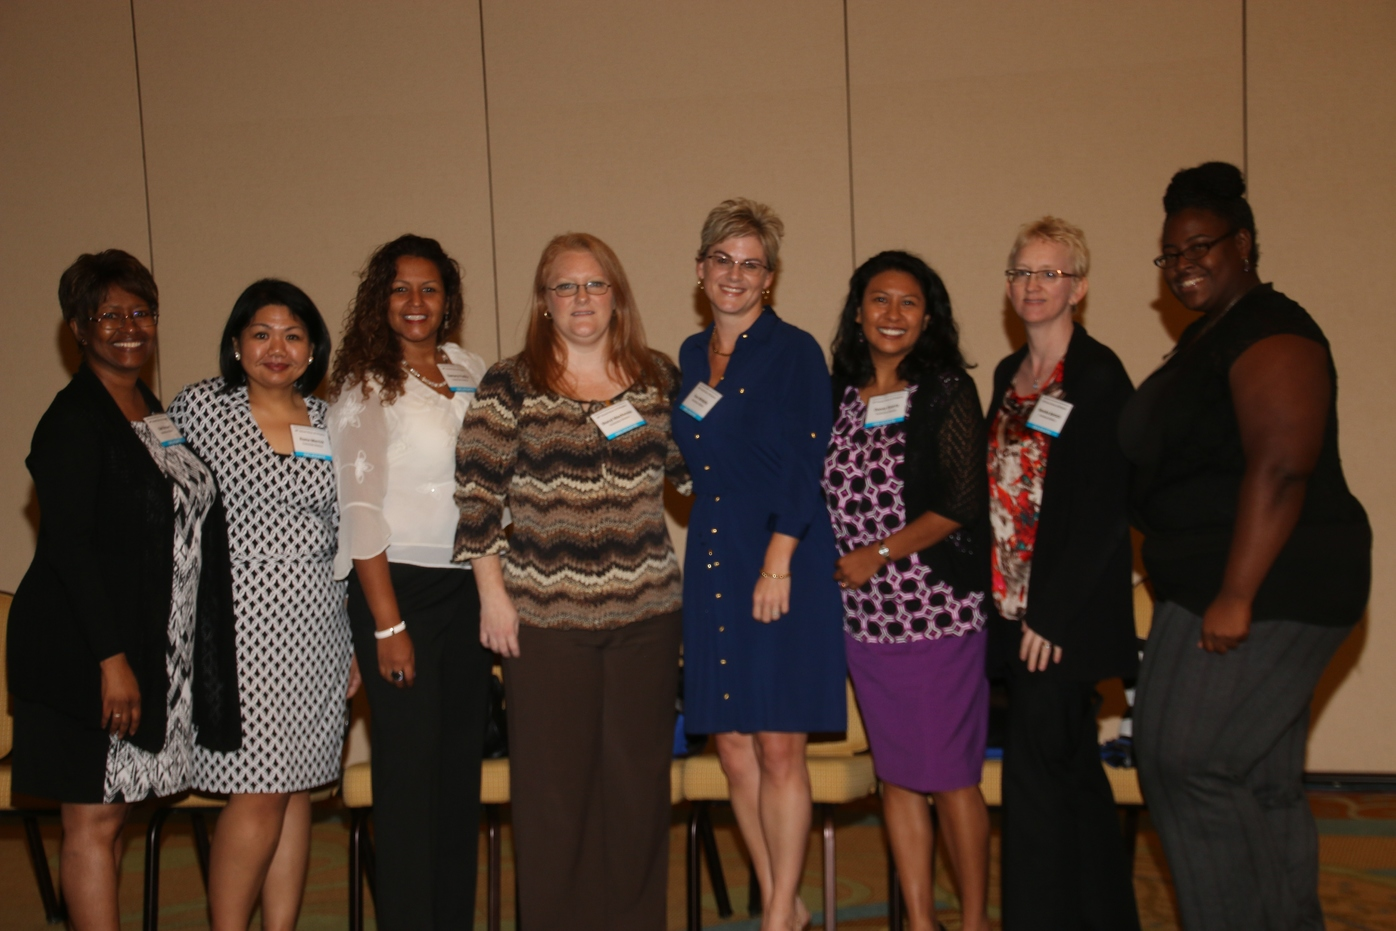 Past FSHP Annual Meeting Photo